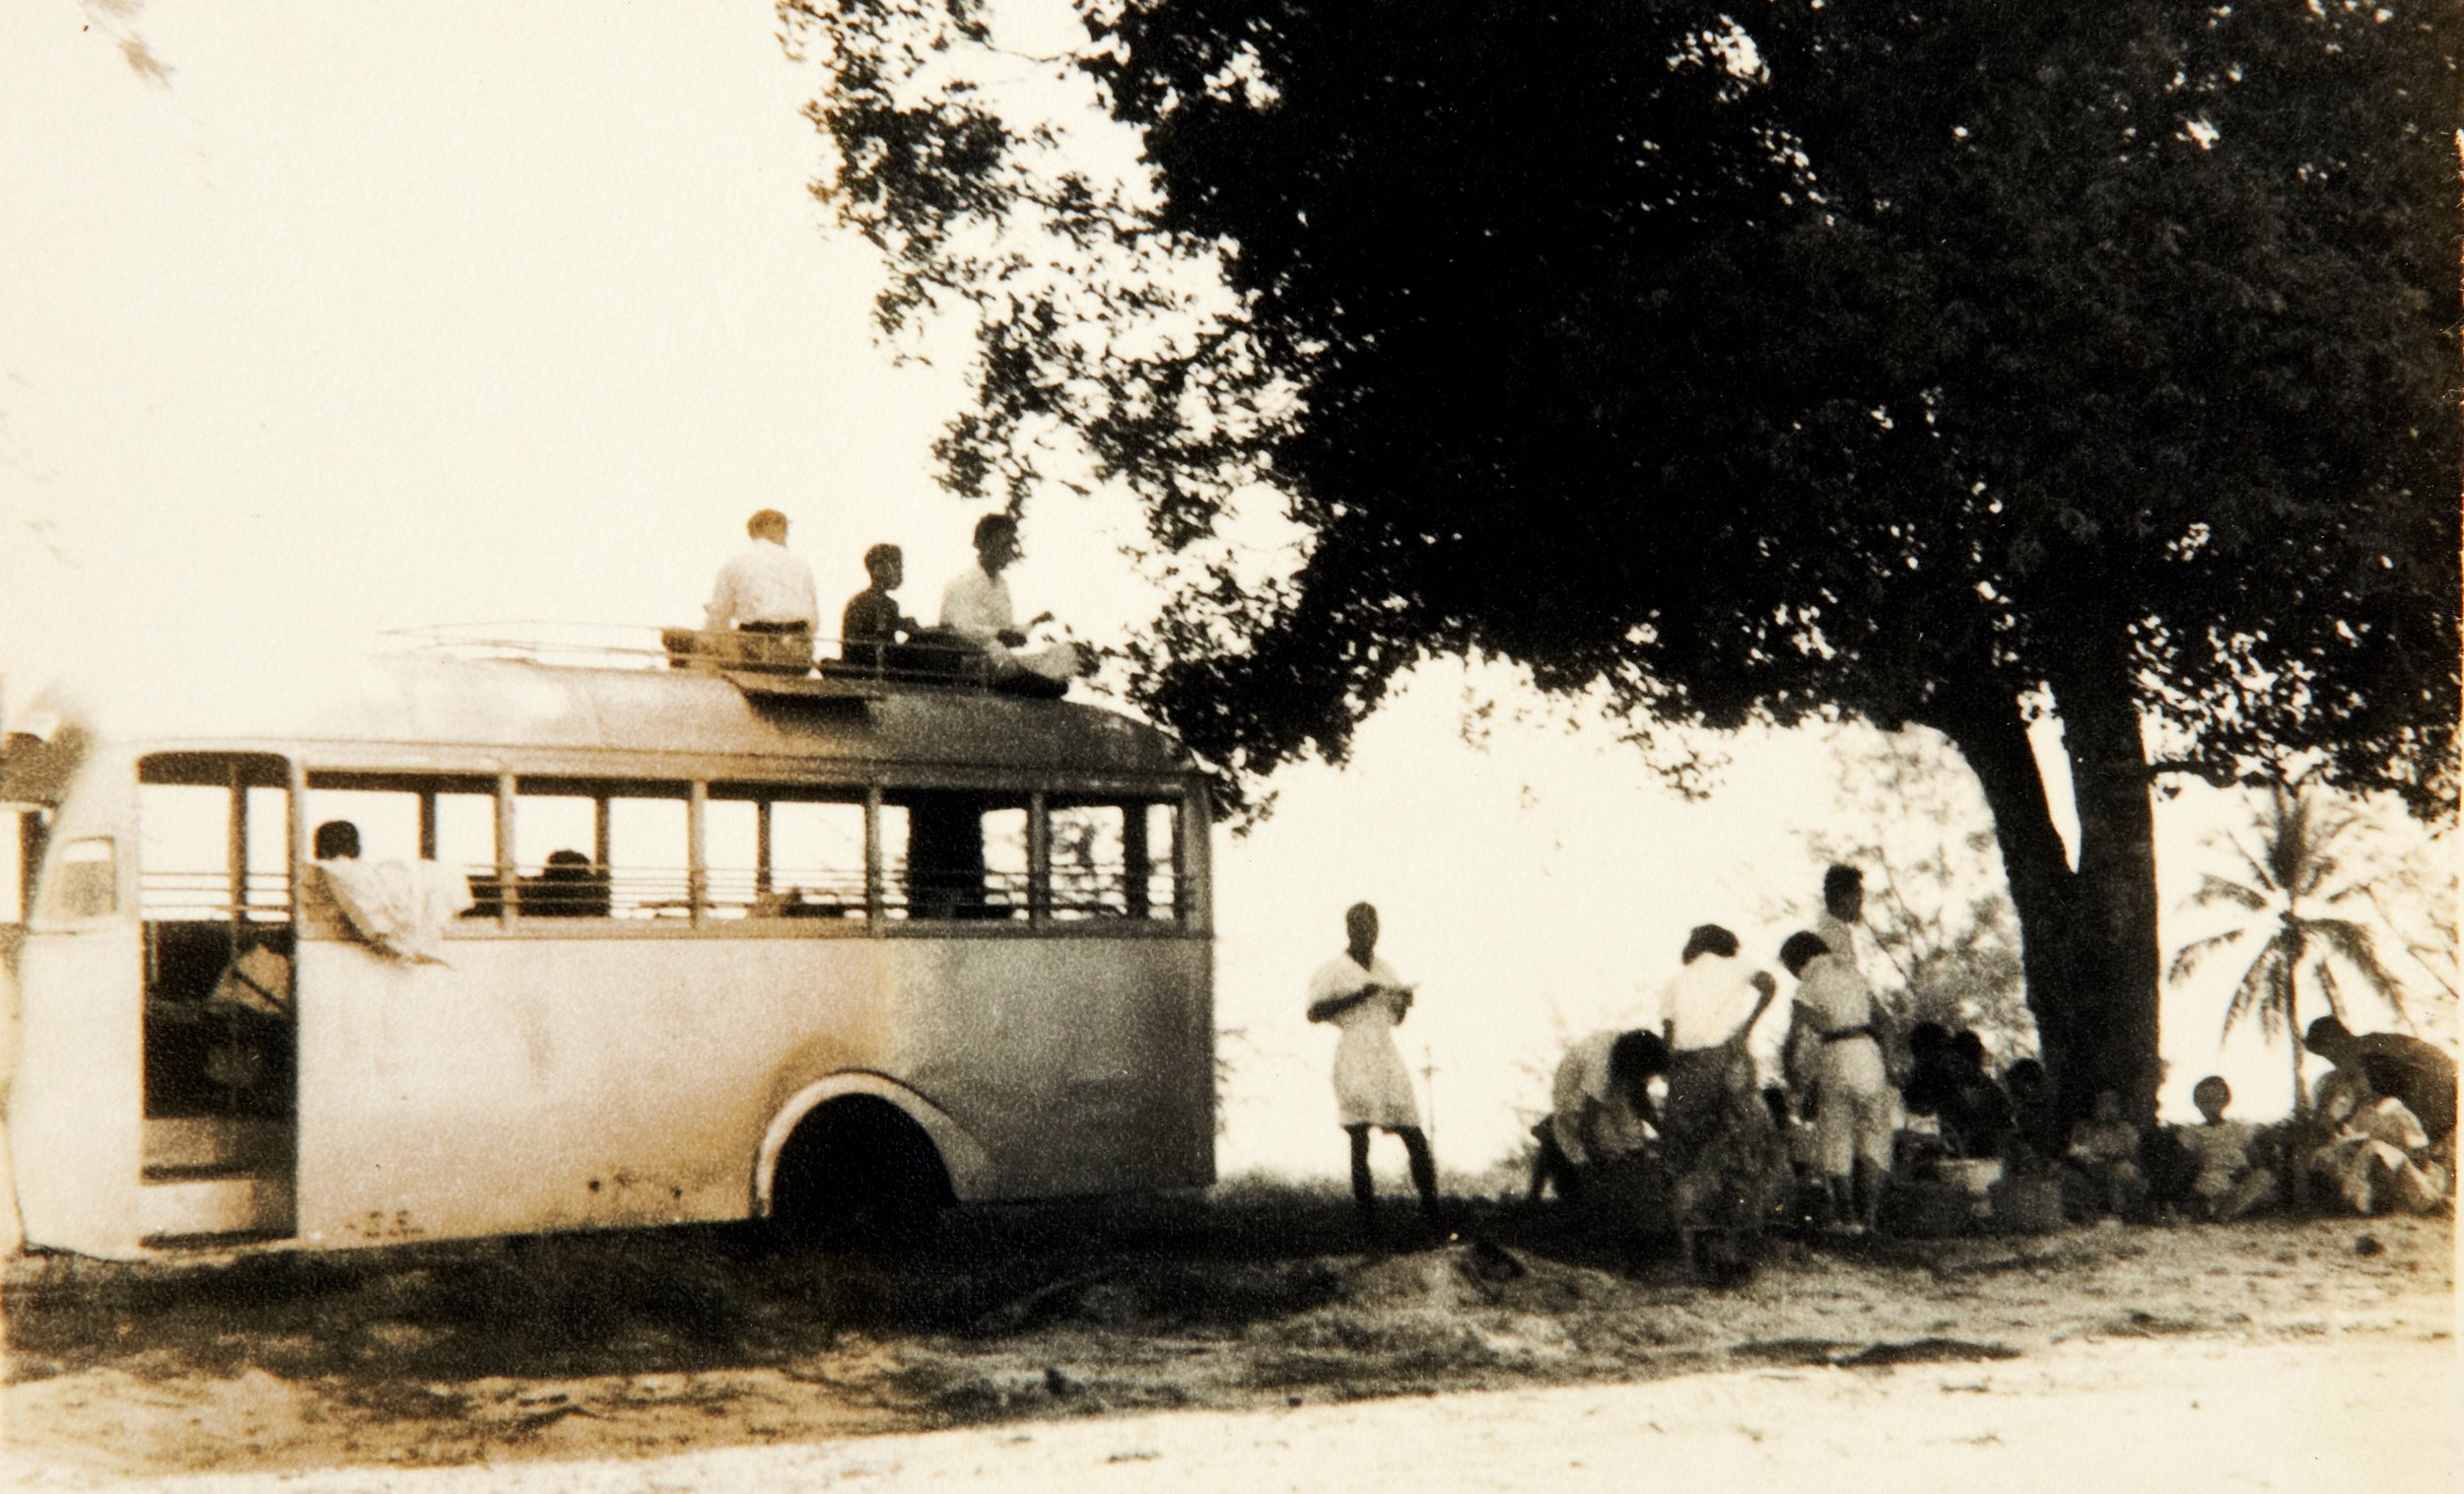 A trip organized by the inmates to Port Dickson. (photo courtesy of Sungai Buloh Settlement Council)